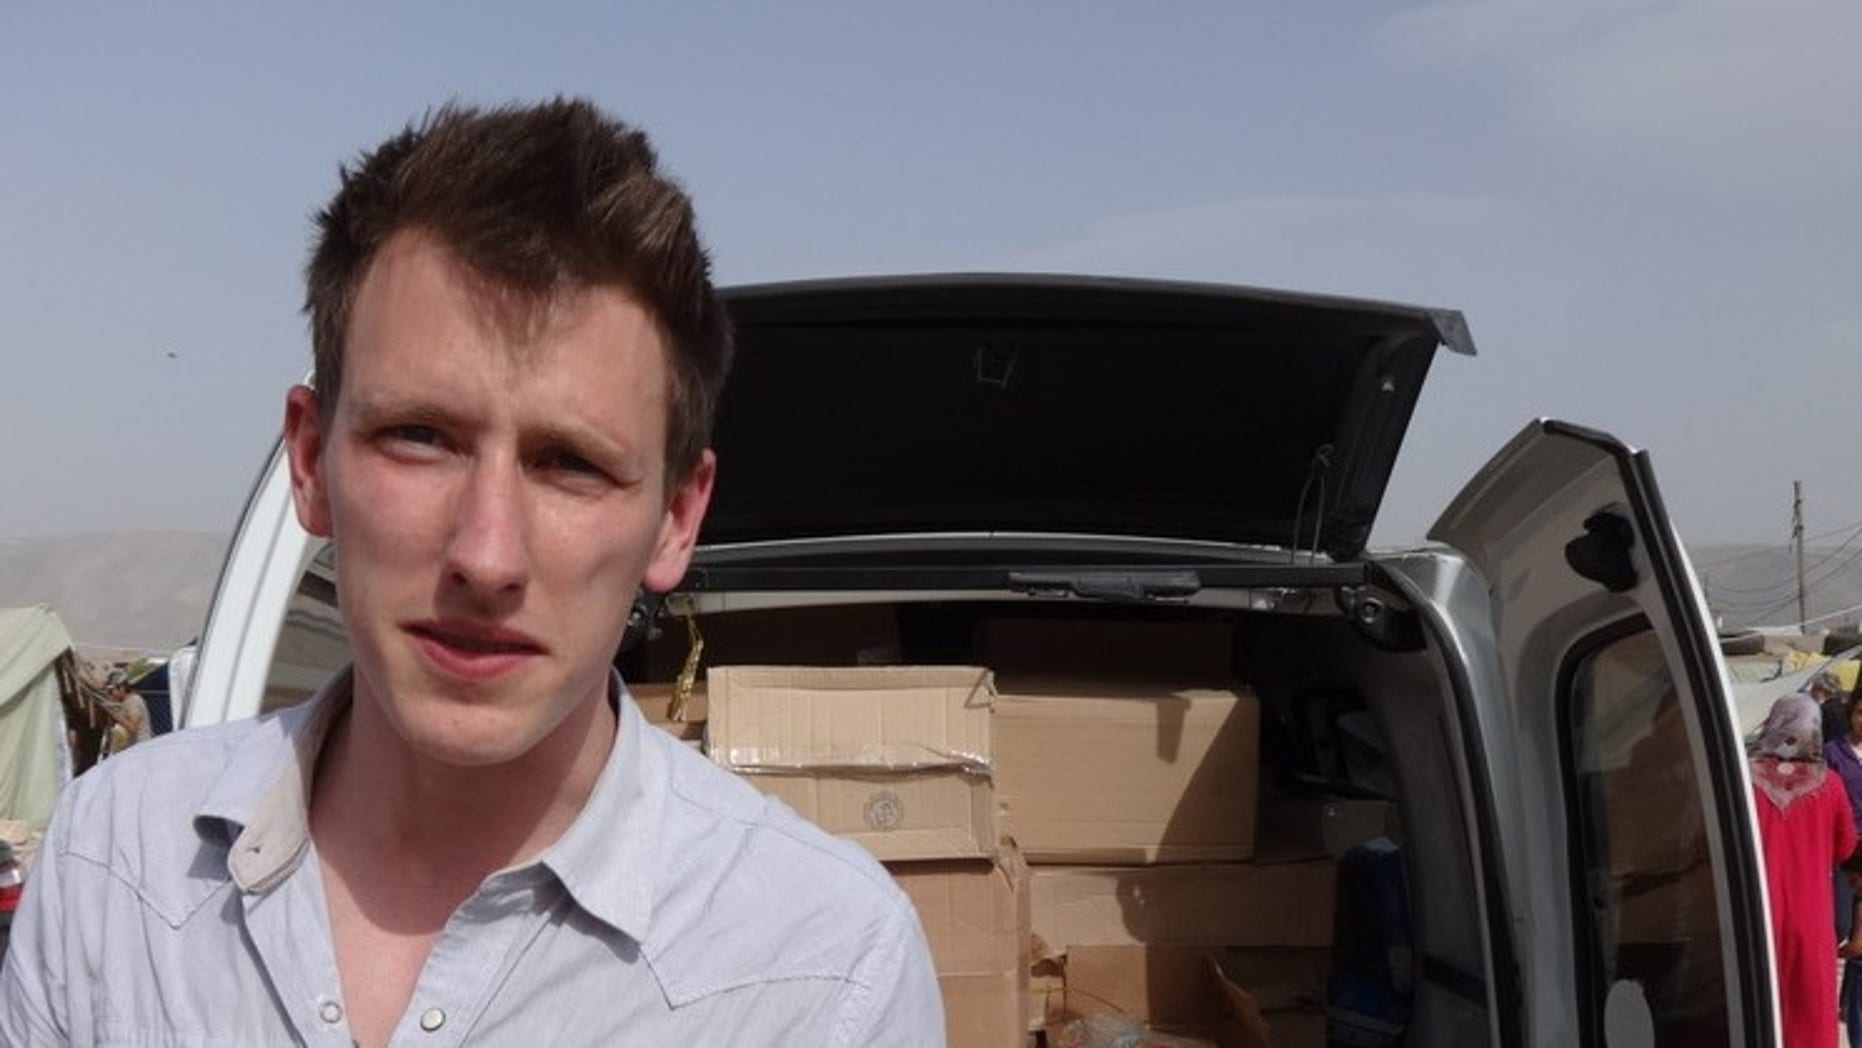 Reporter's Notebook: Peter Kassig's selfless aid and brutal murder left a profound impact on this journalist